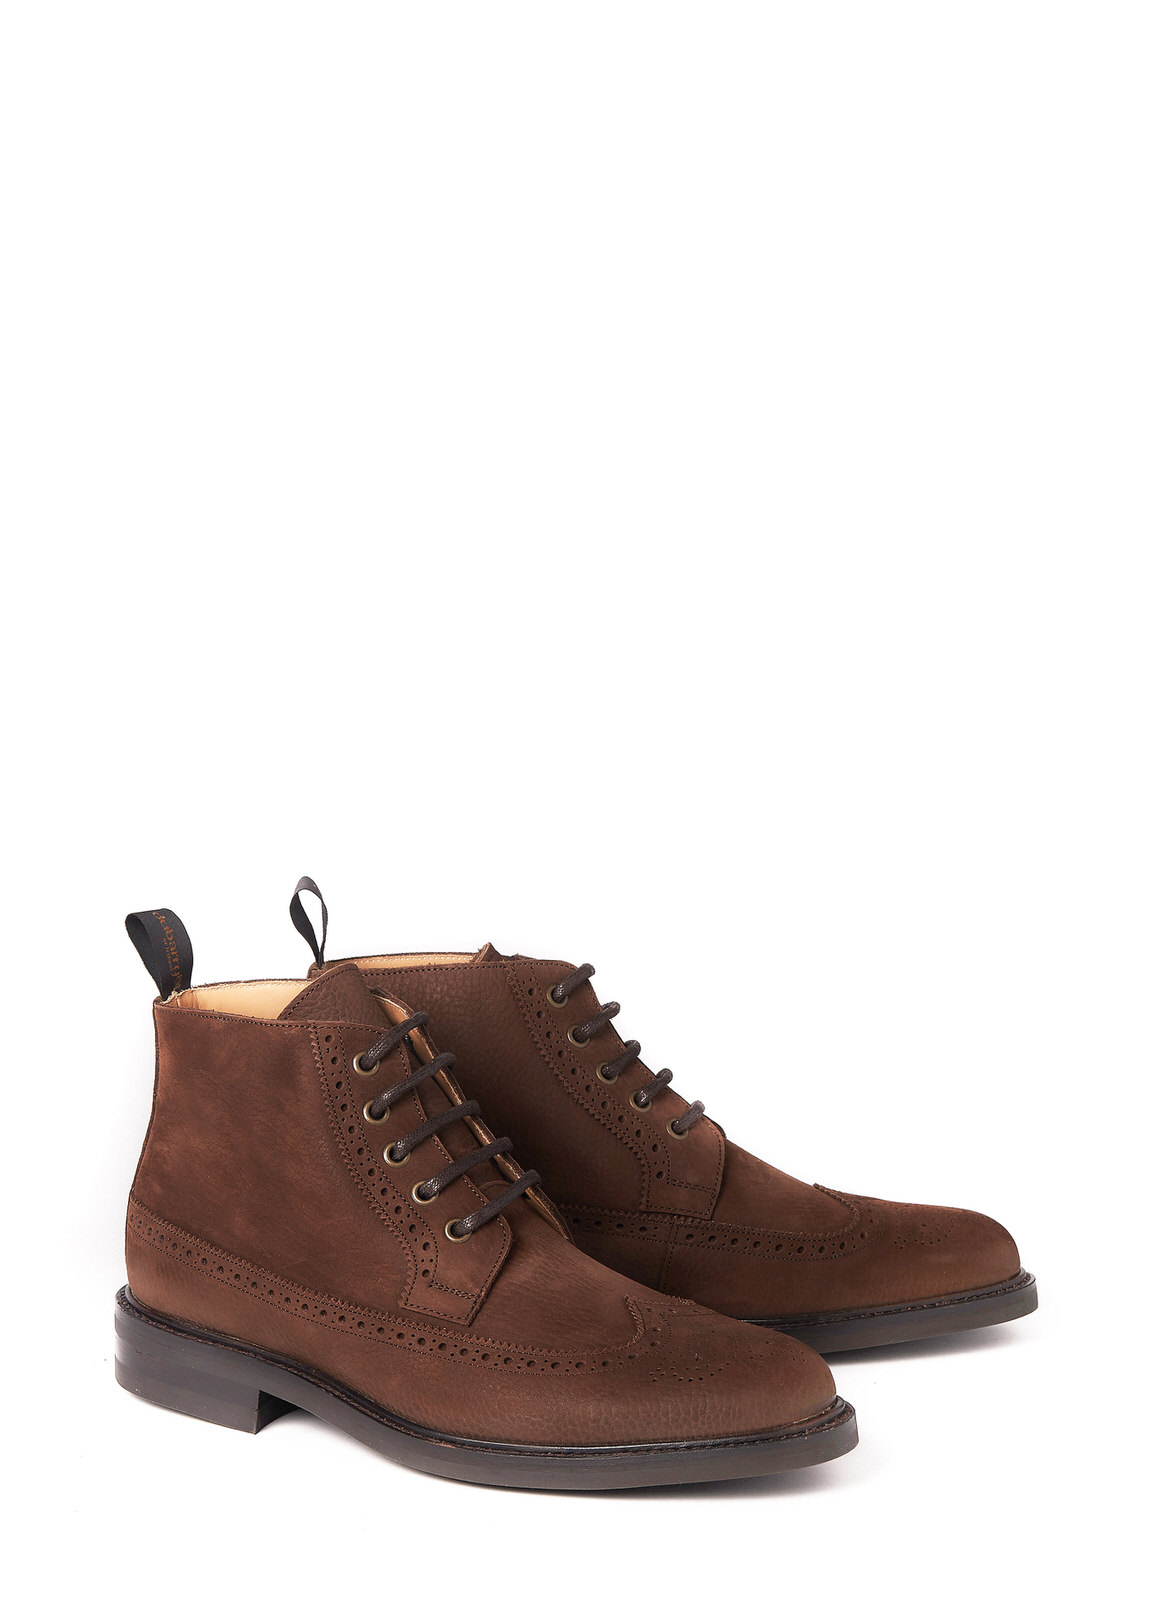 Down brogue veterschoen - Walnut